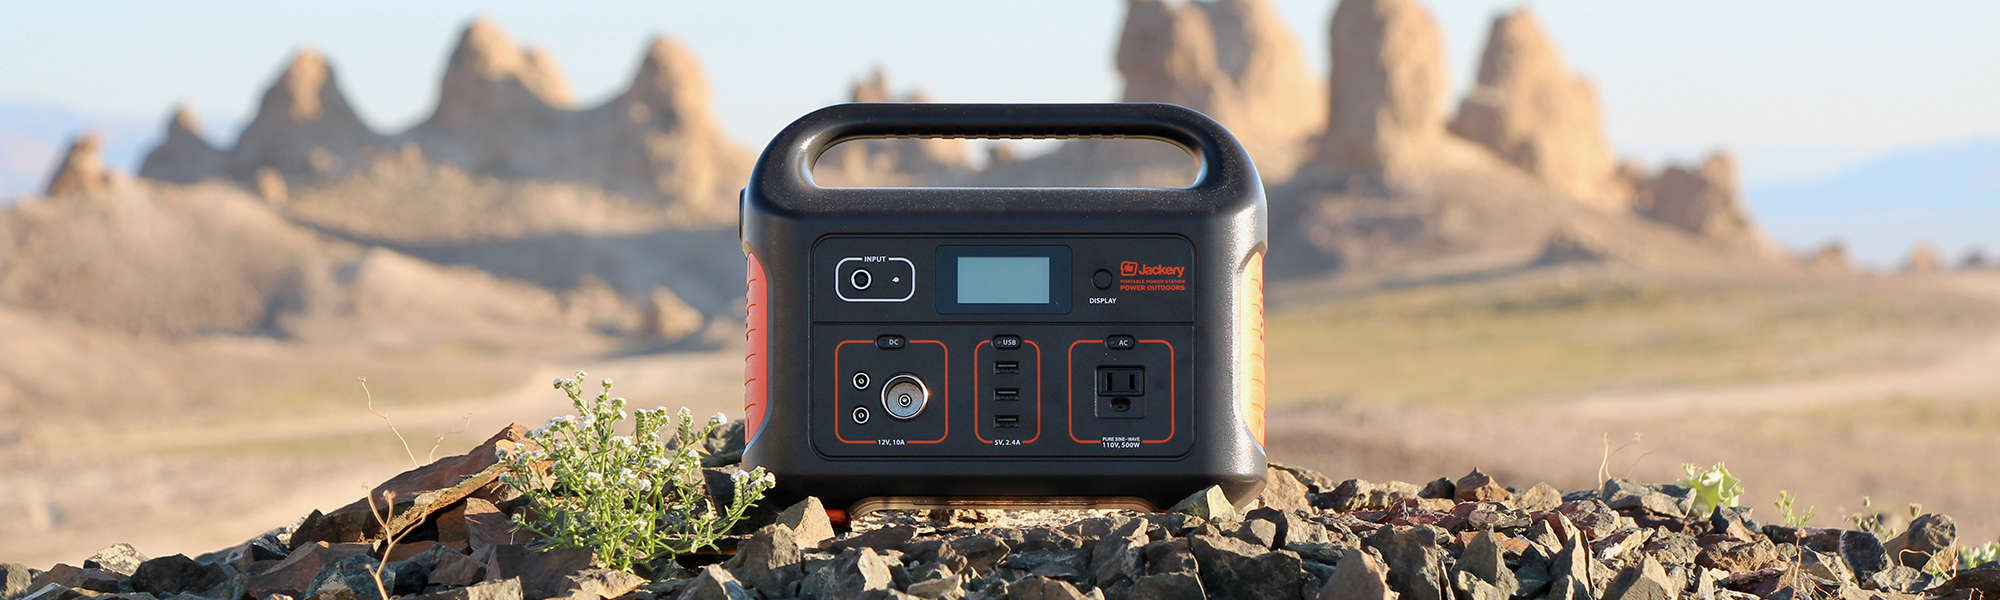 Jackery Explorer 500 sitting on rocks by the Trona Pinnacles in California